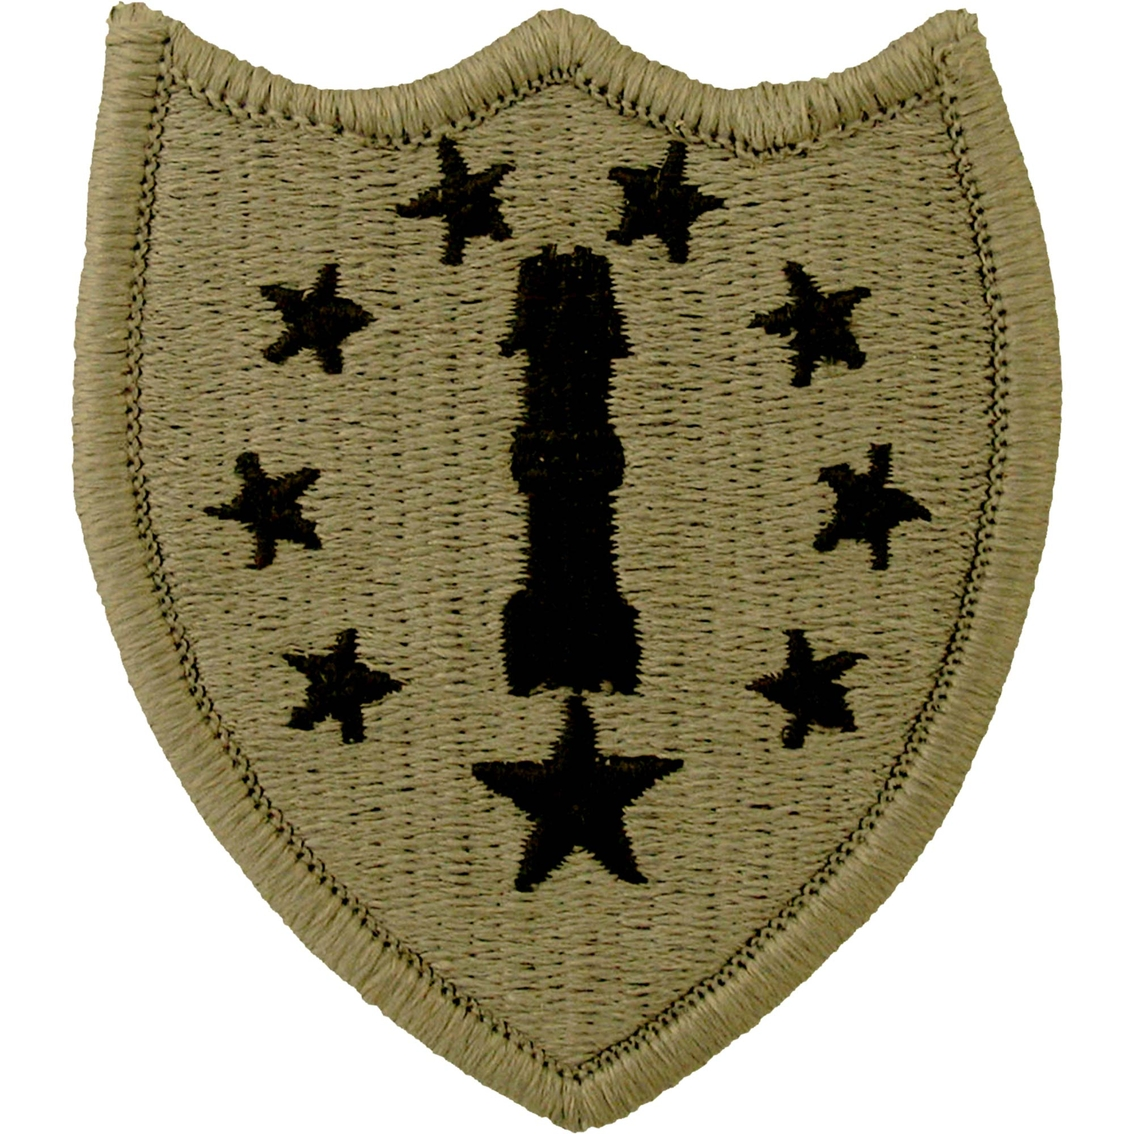 State national guard patches